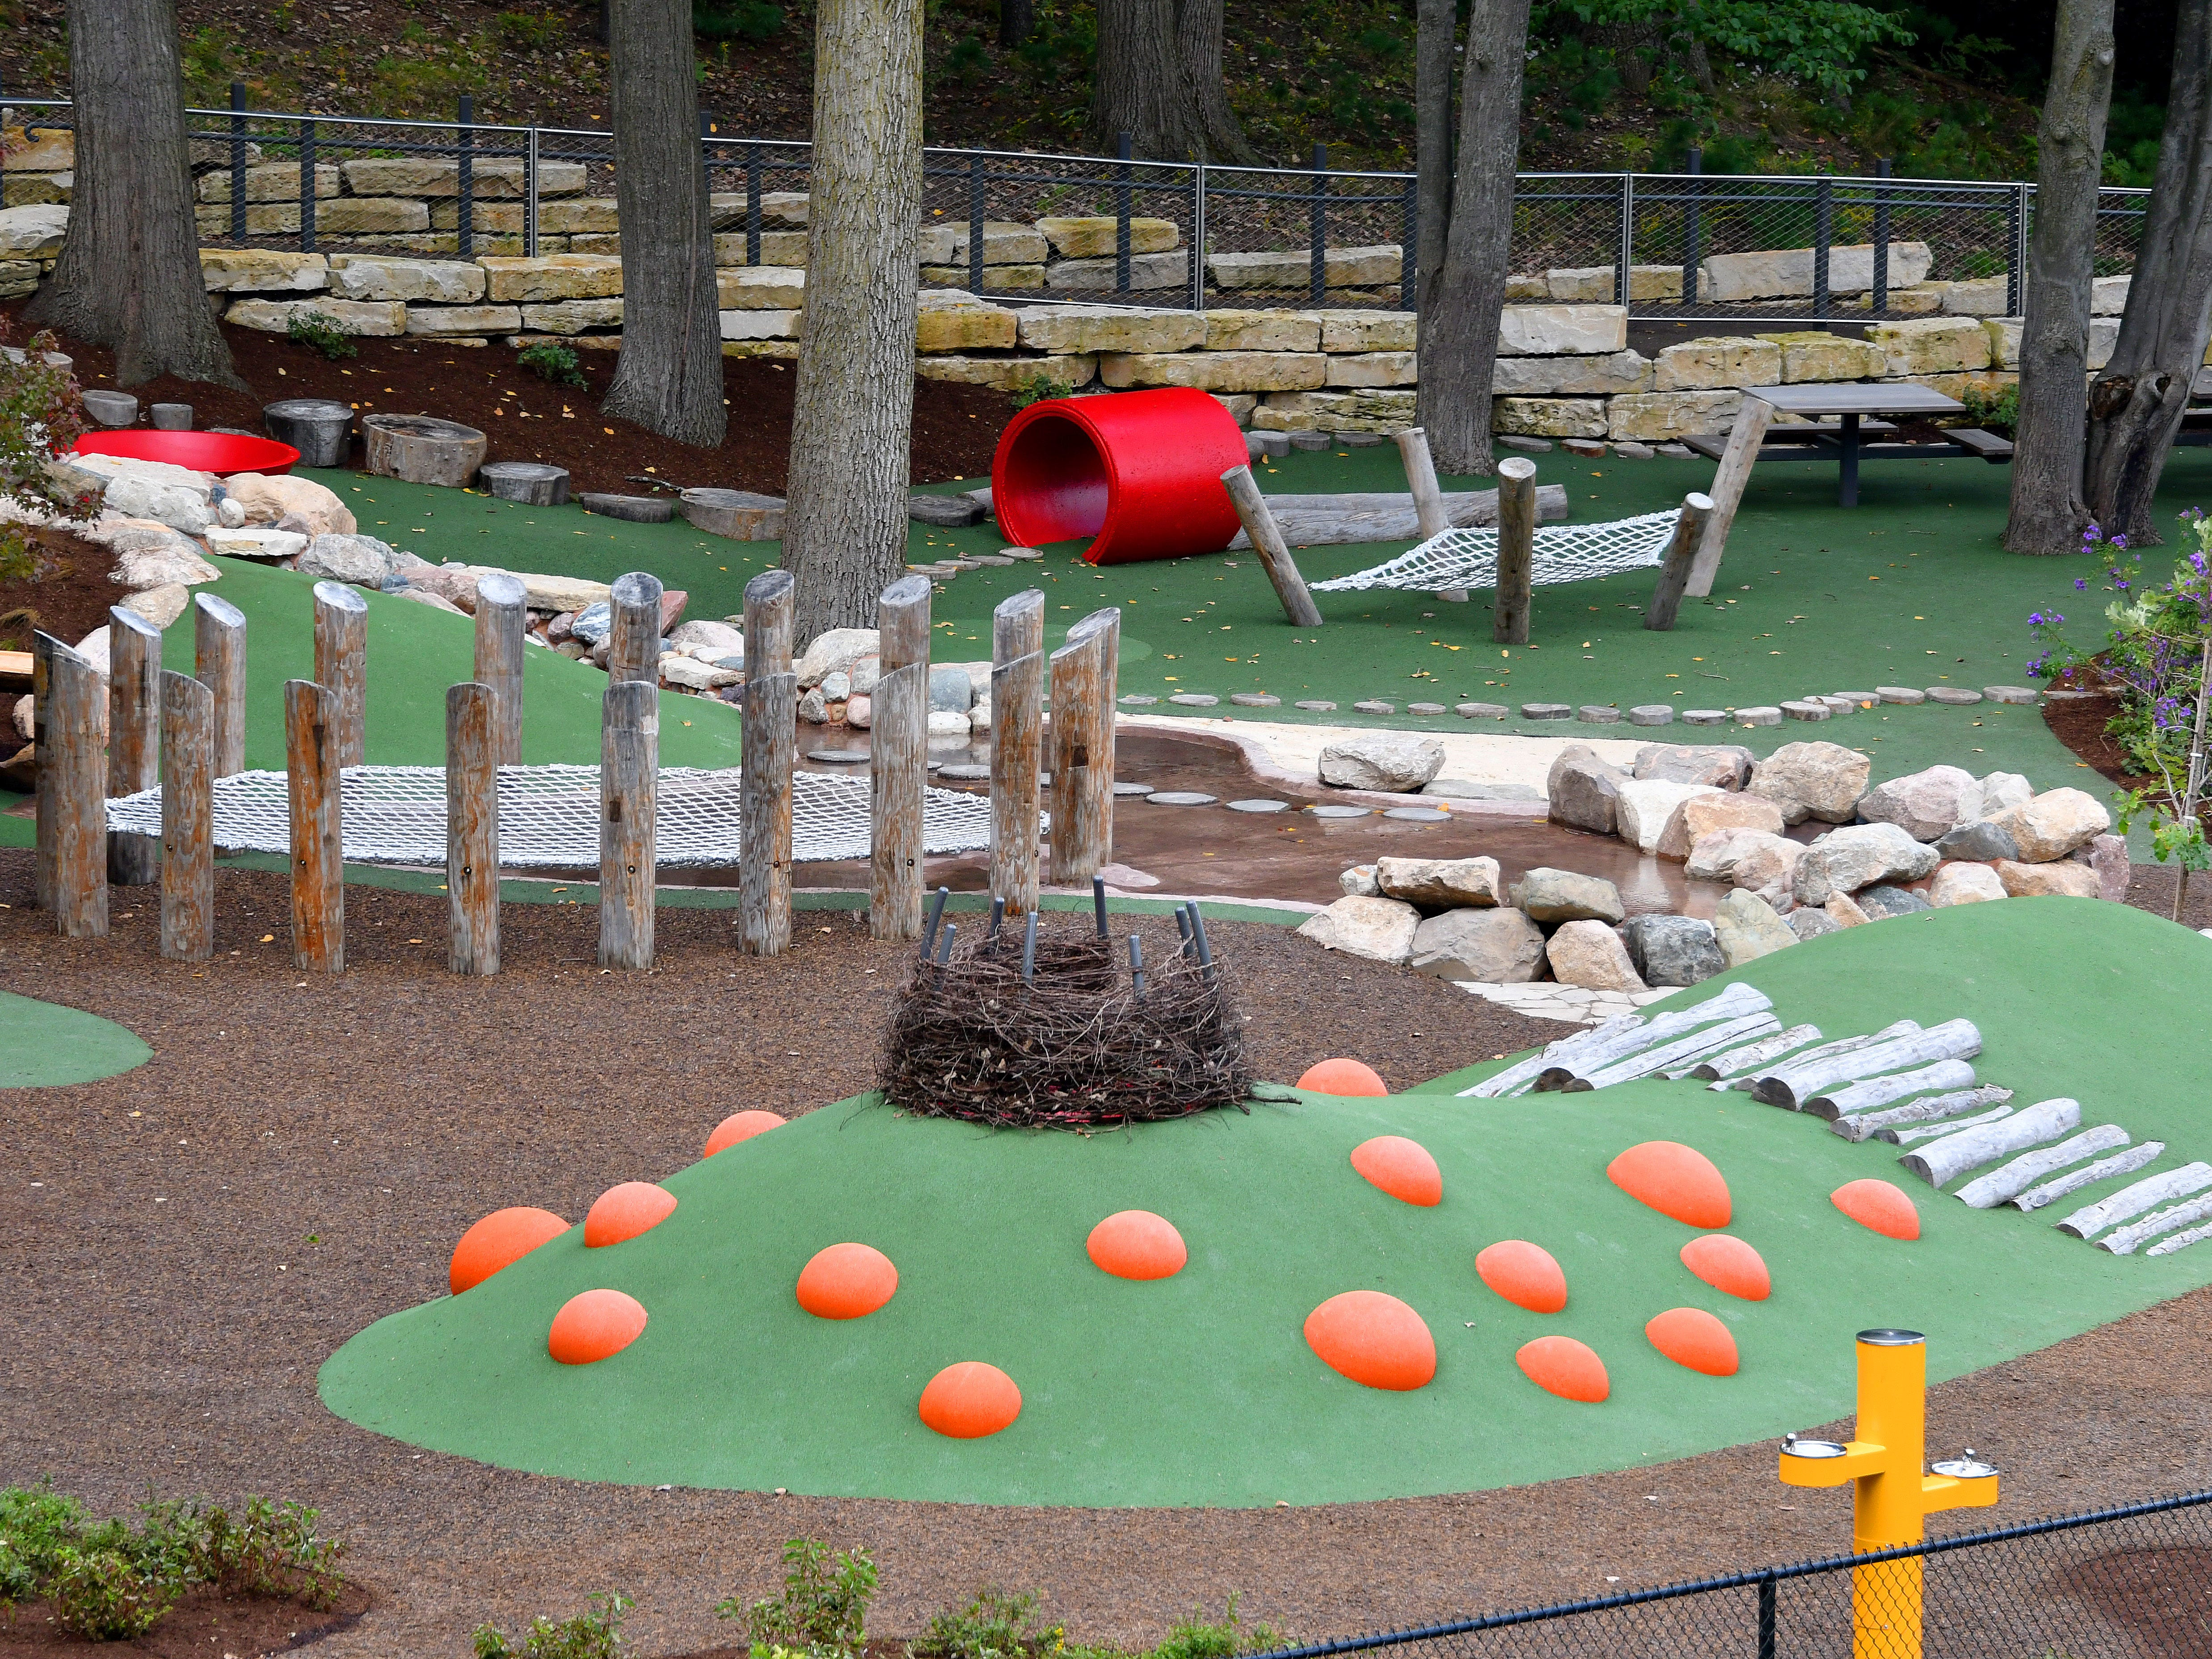 The play area includes picnic tables and is also conveniently located next to the cafe.